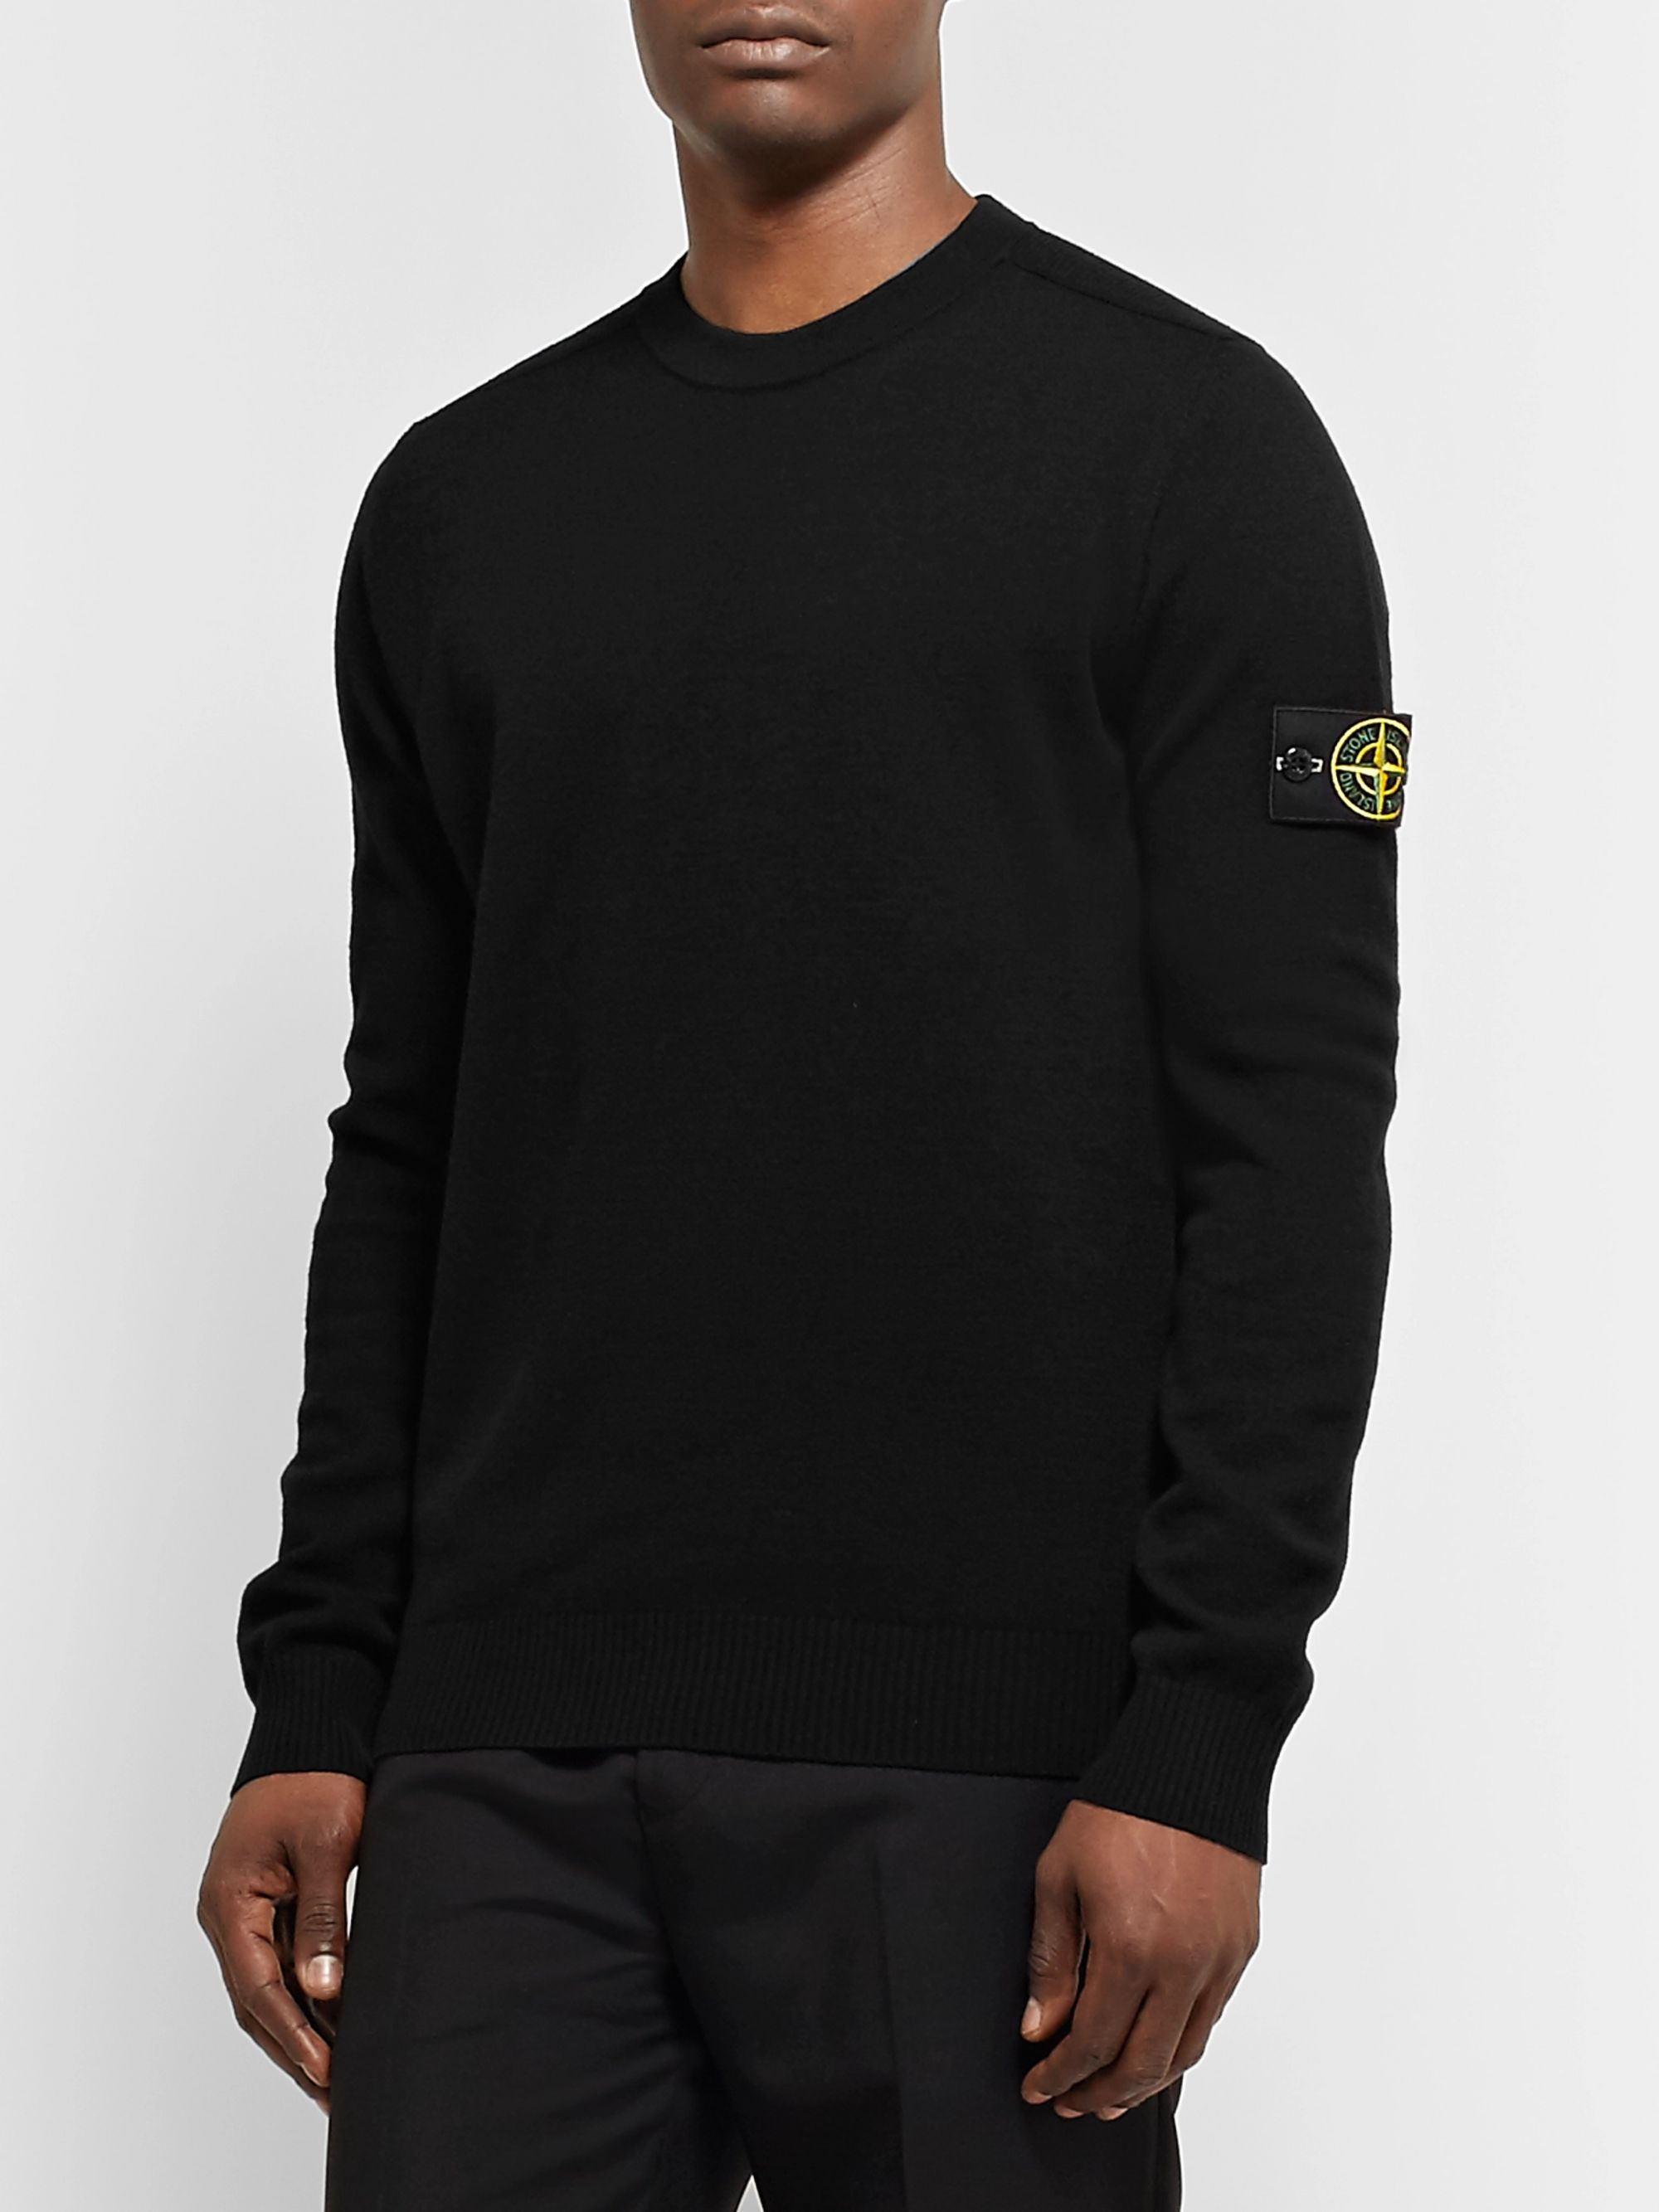 Stone Island Logo-Appliquéd Wool-Blend Sweater